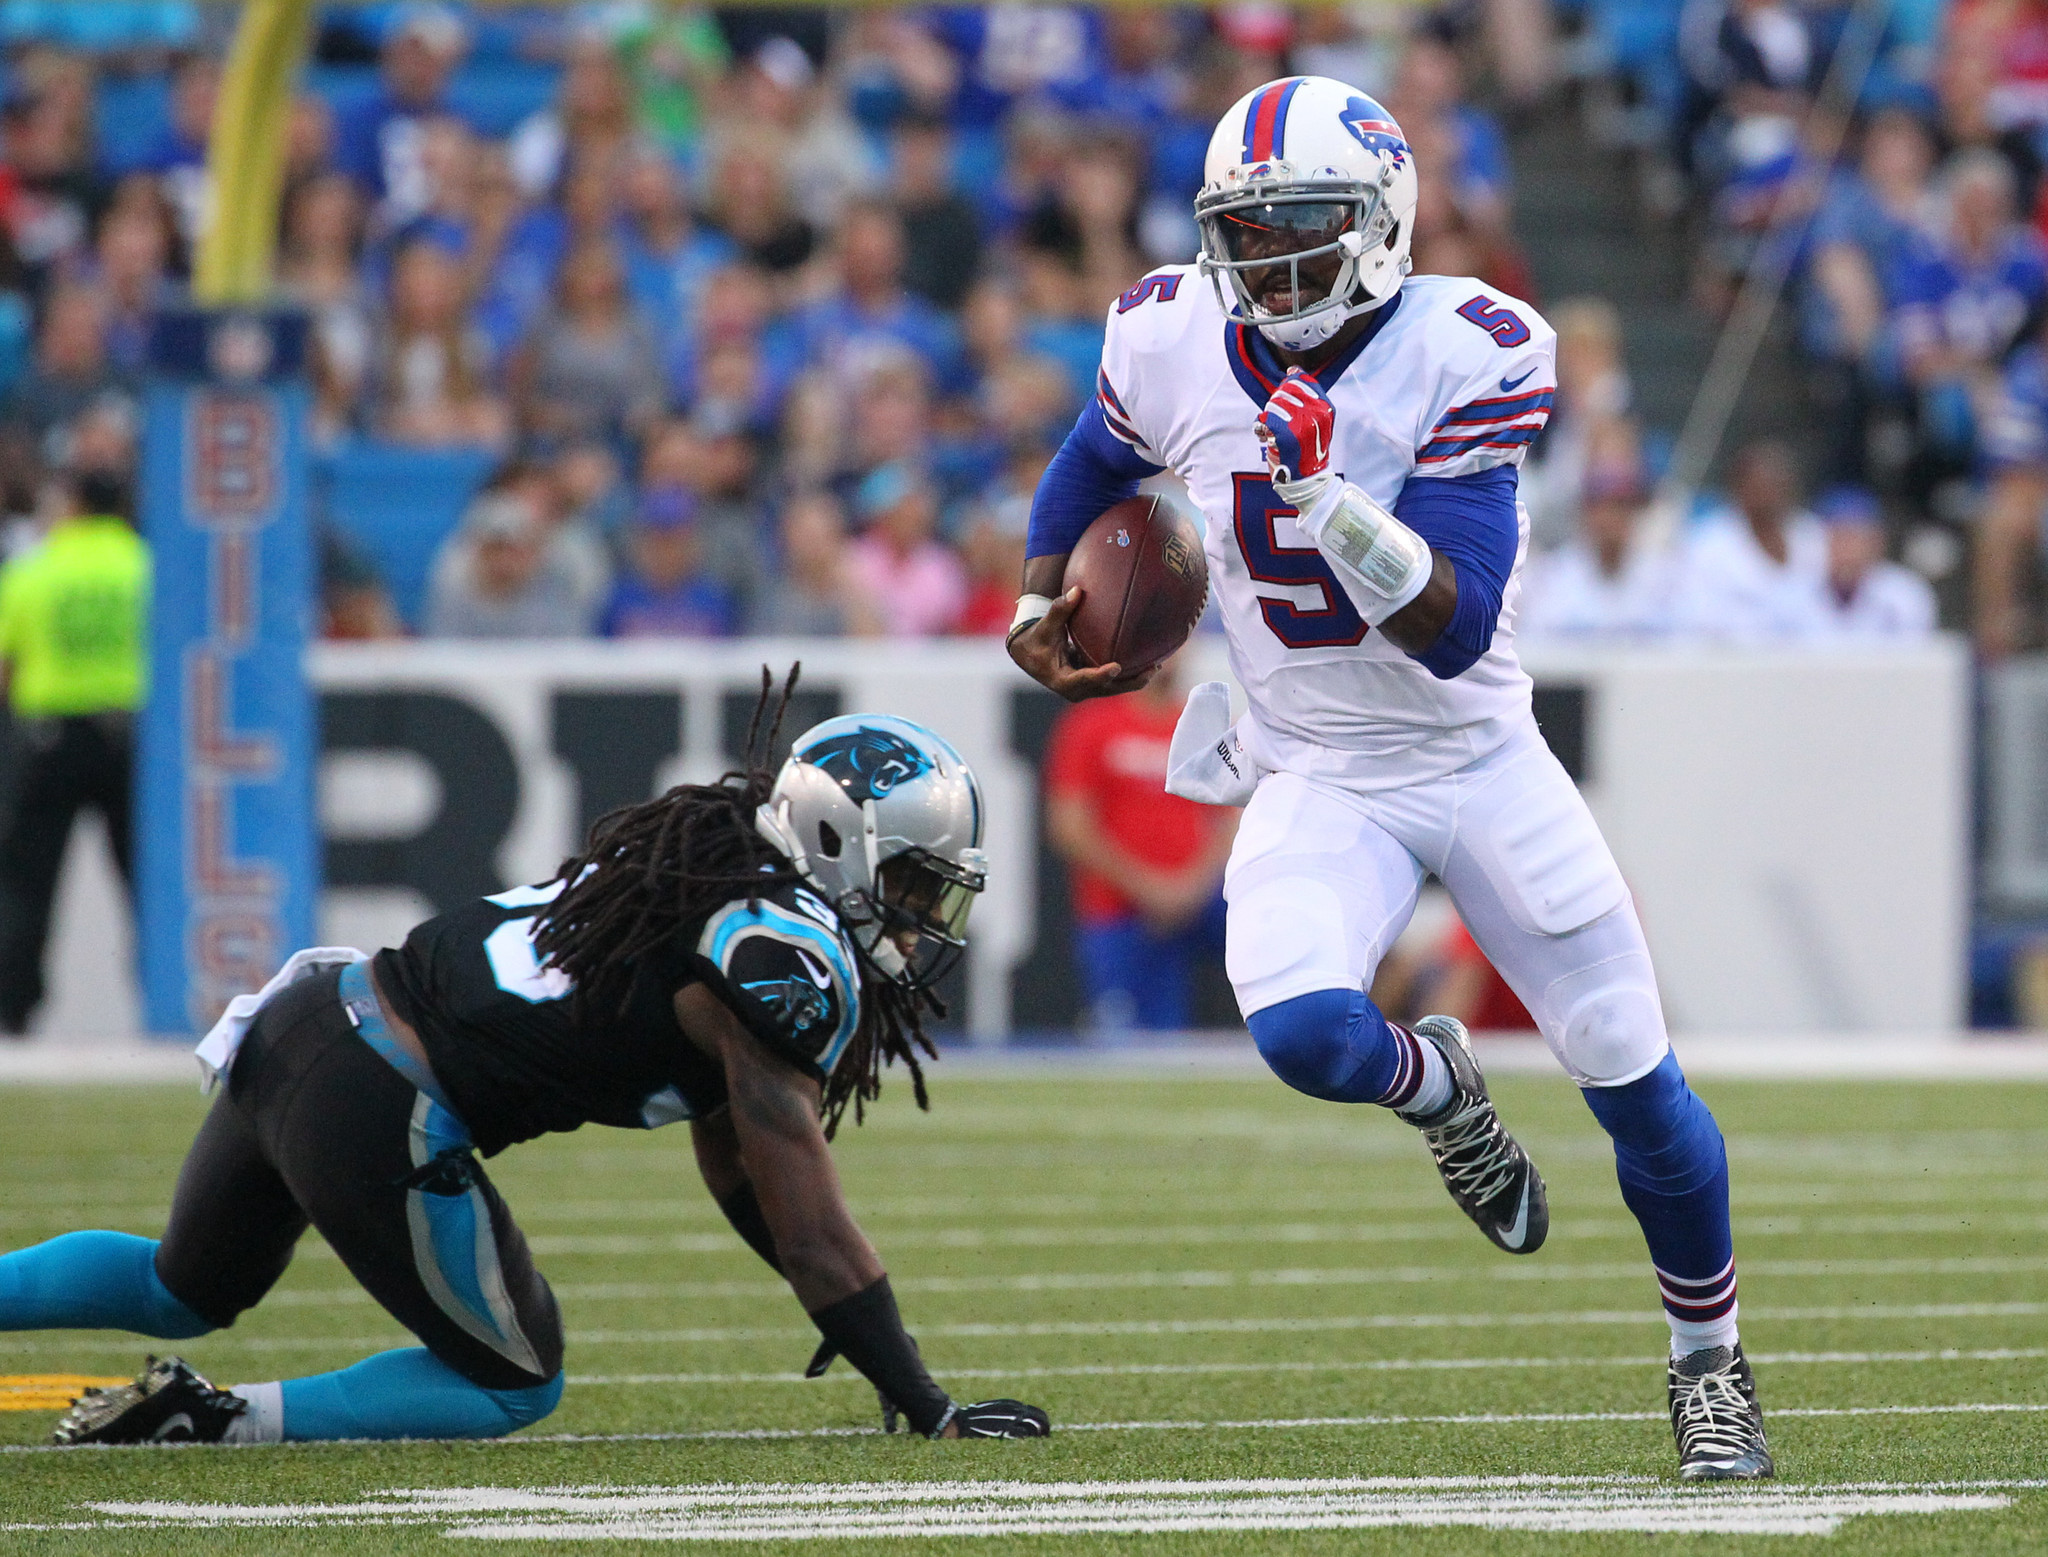 Bal-bills-sign-former-ravens-qb-tyrod-taylor-to-six-year-contract-extension-20160812